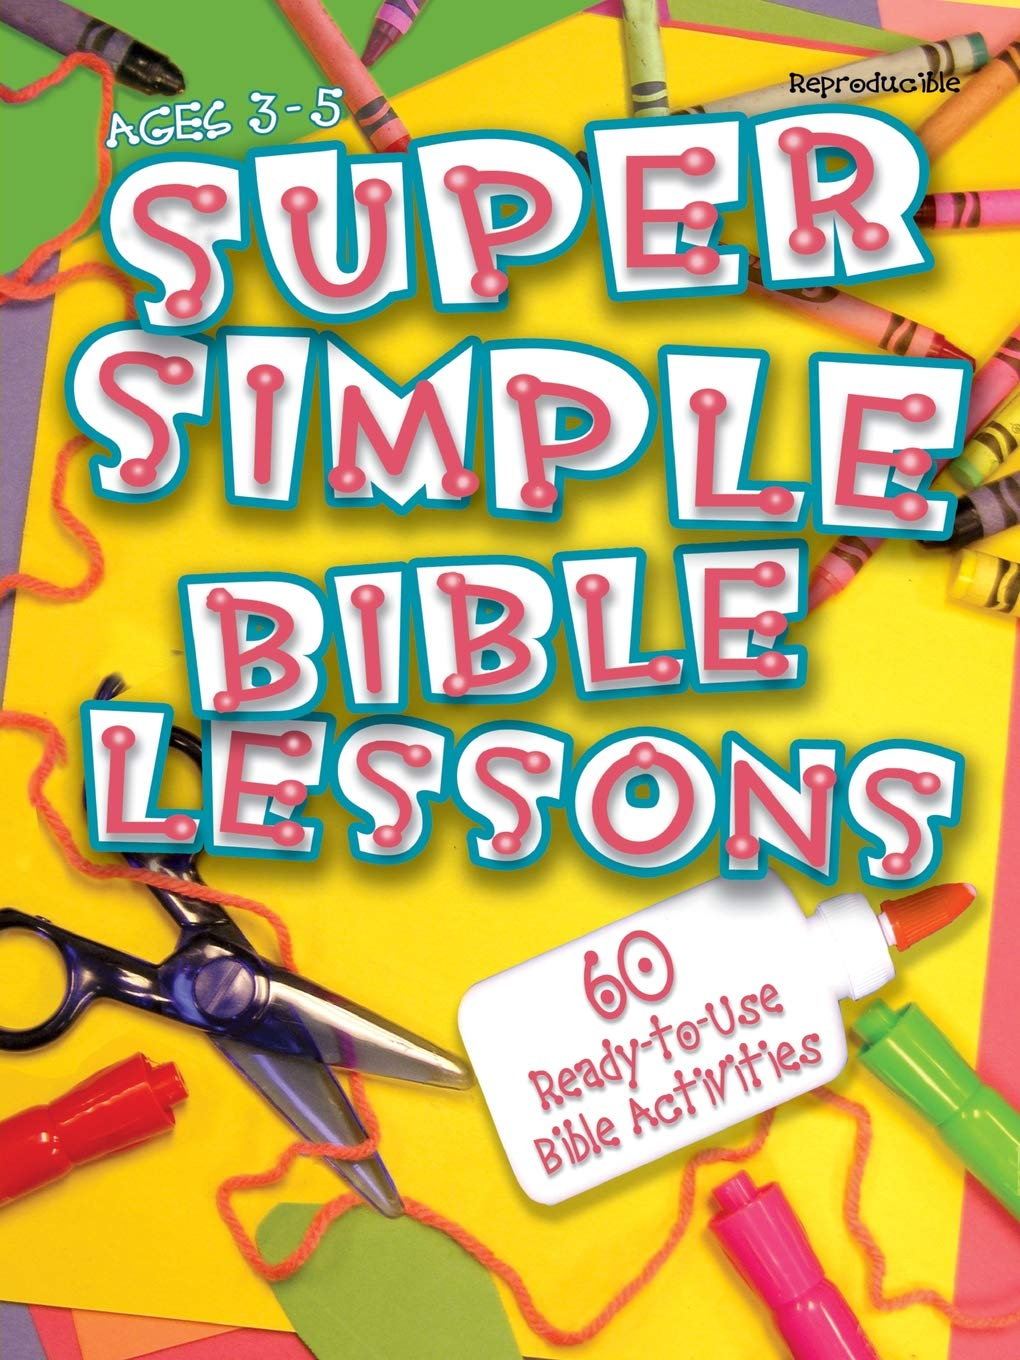 Download Super Simple Bible Lessons (Ages 3-5): 60 Ready-To-Use Bible Activities for Ages 3-5 pdf epub